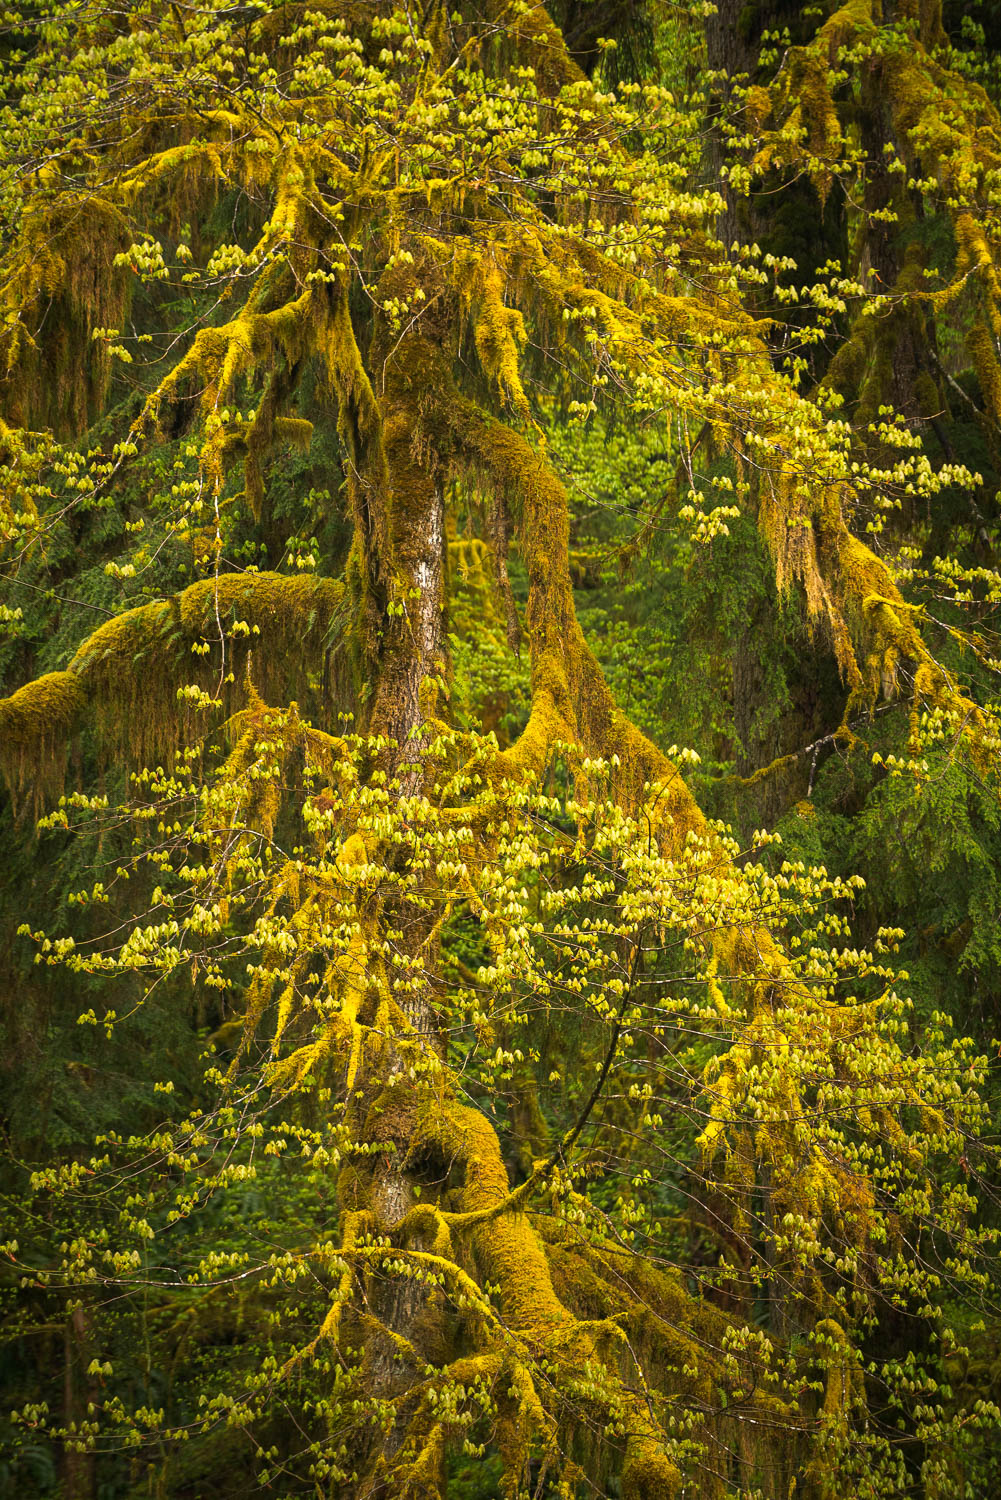 Olympic National Park photo workshop locations include lush rain forests